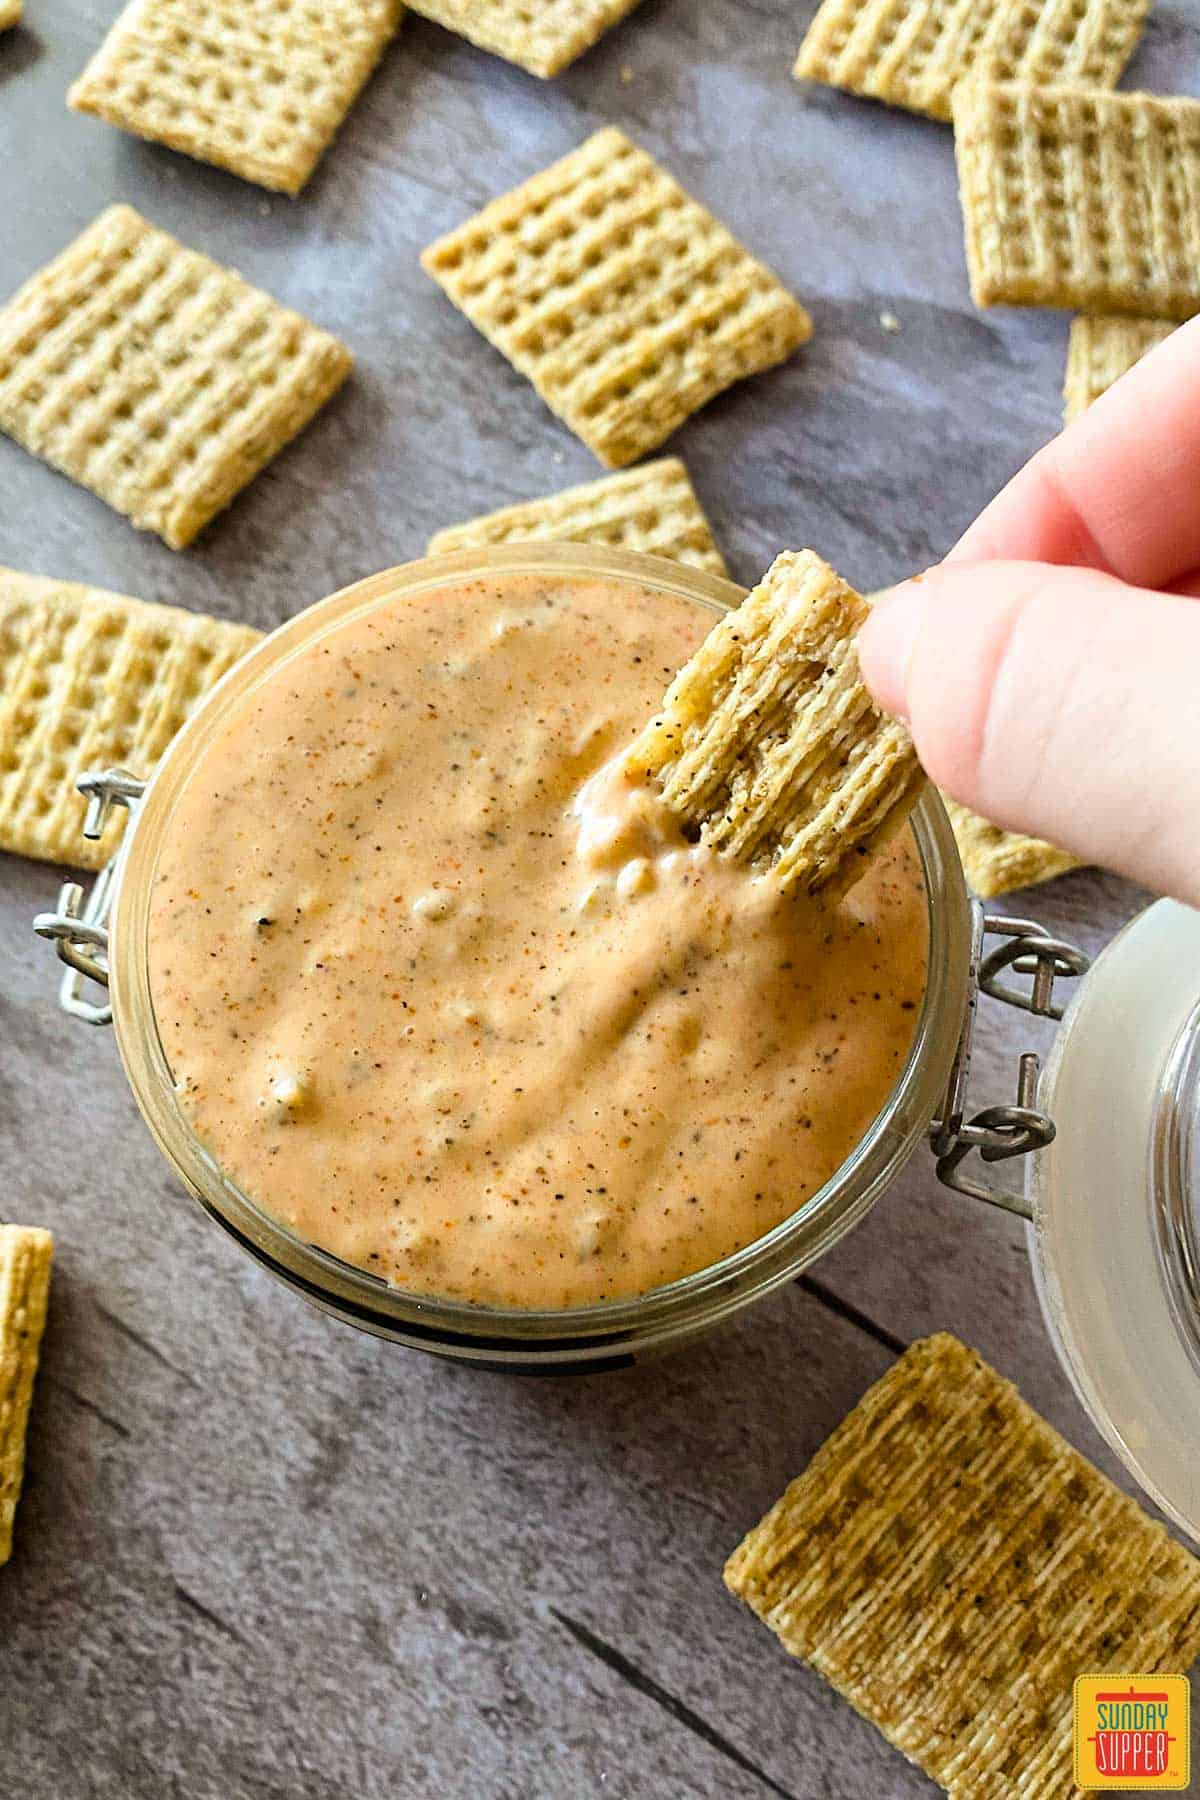 Dipping a cracker into remoulade sauce in a glass jar